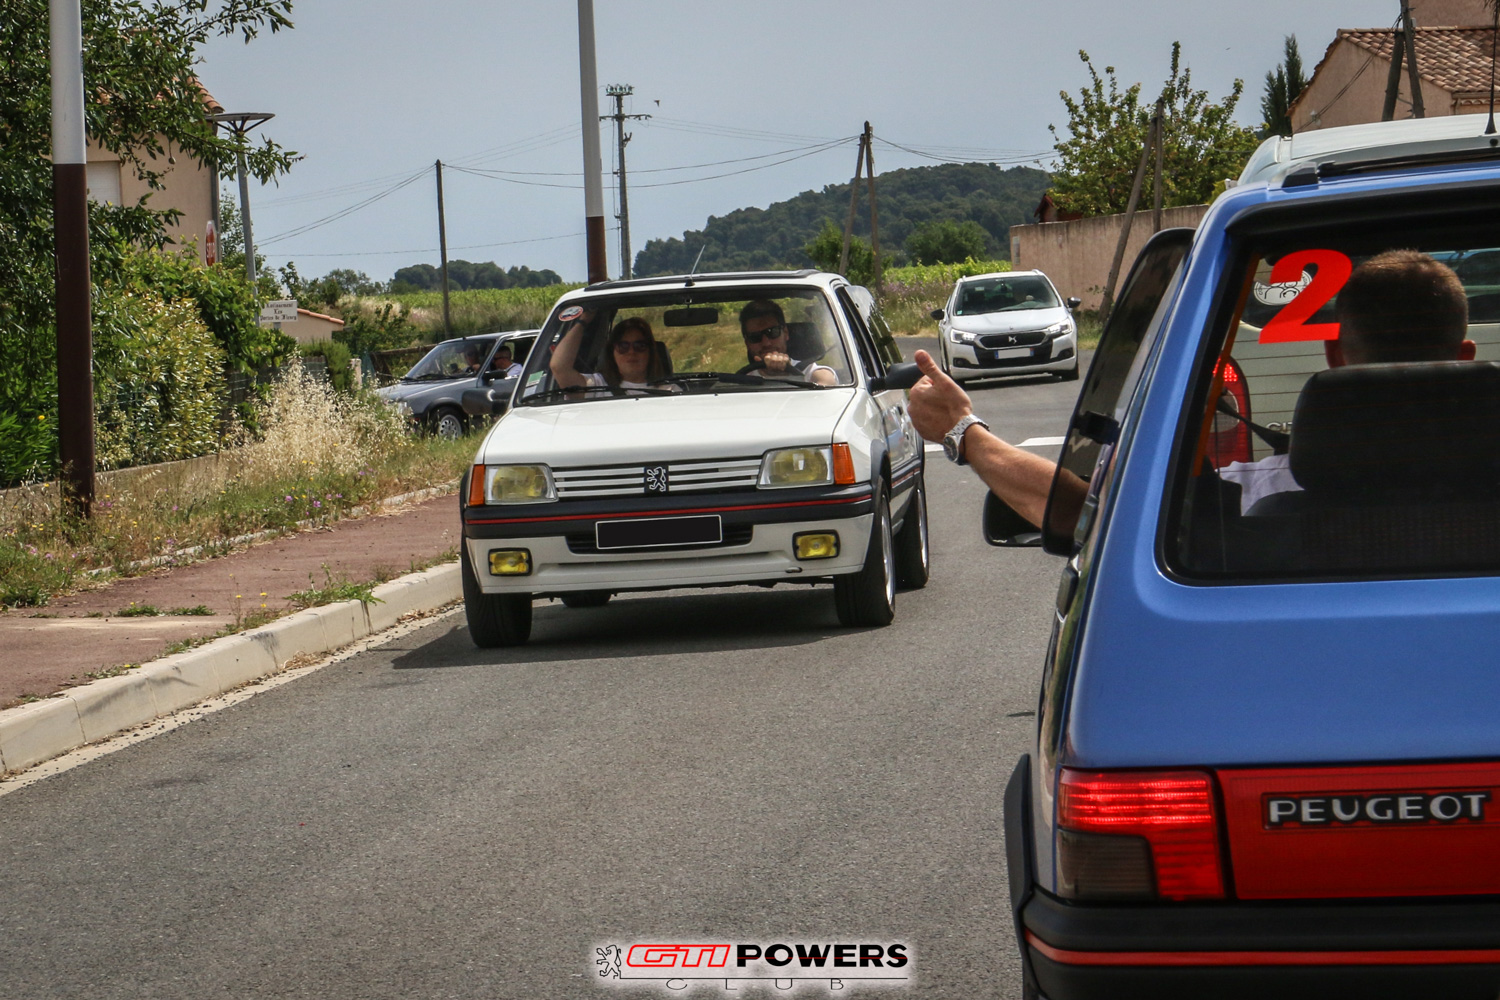 [GTIPOWERS DAYS] Nationale #4 - 8-9-10 Juin 2019 - Beziers - Page 8 Gtipow90